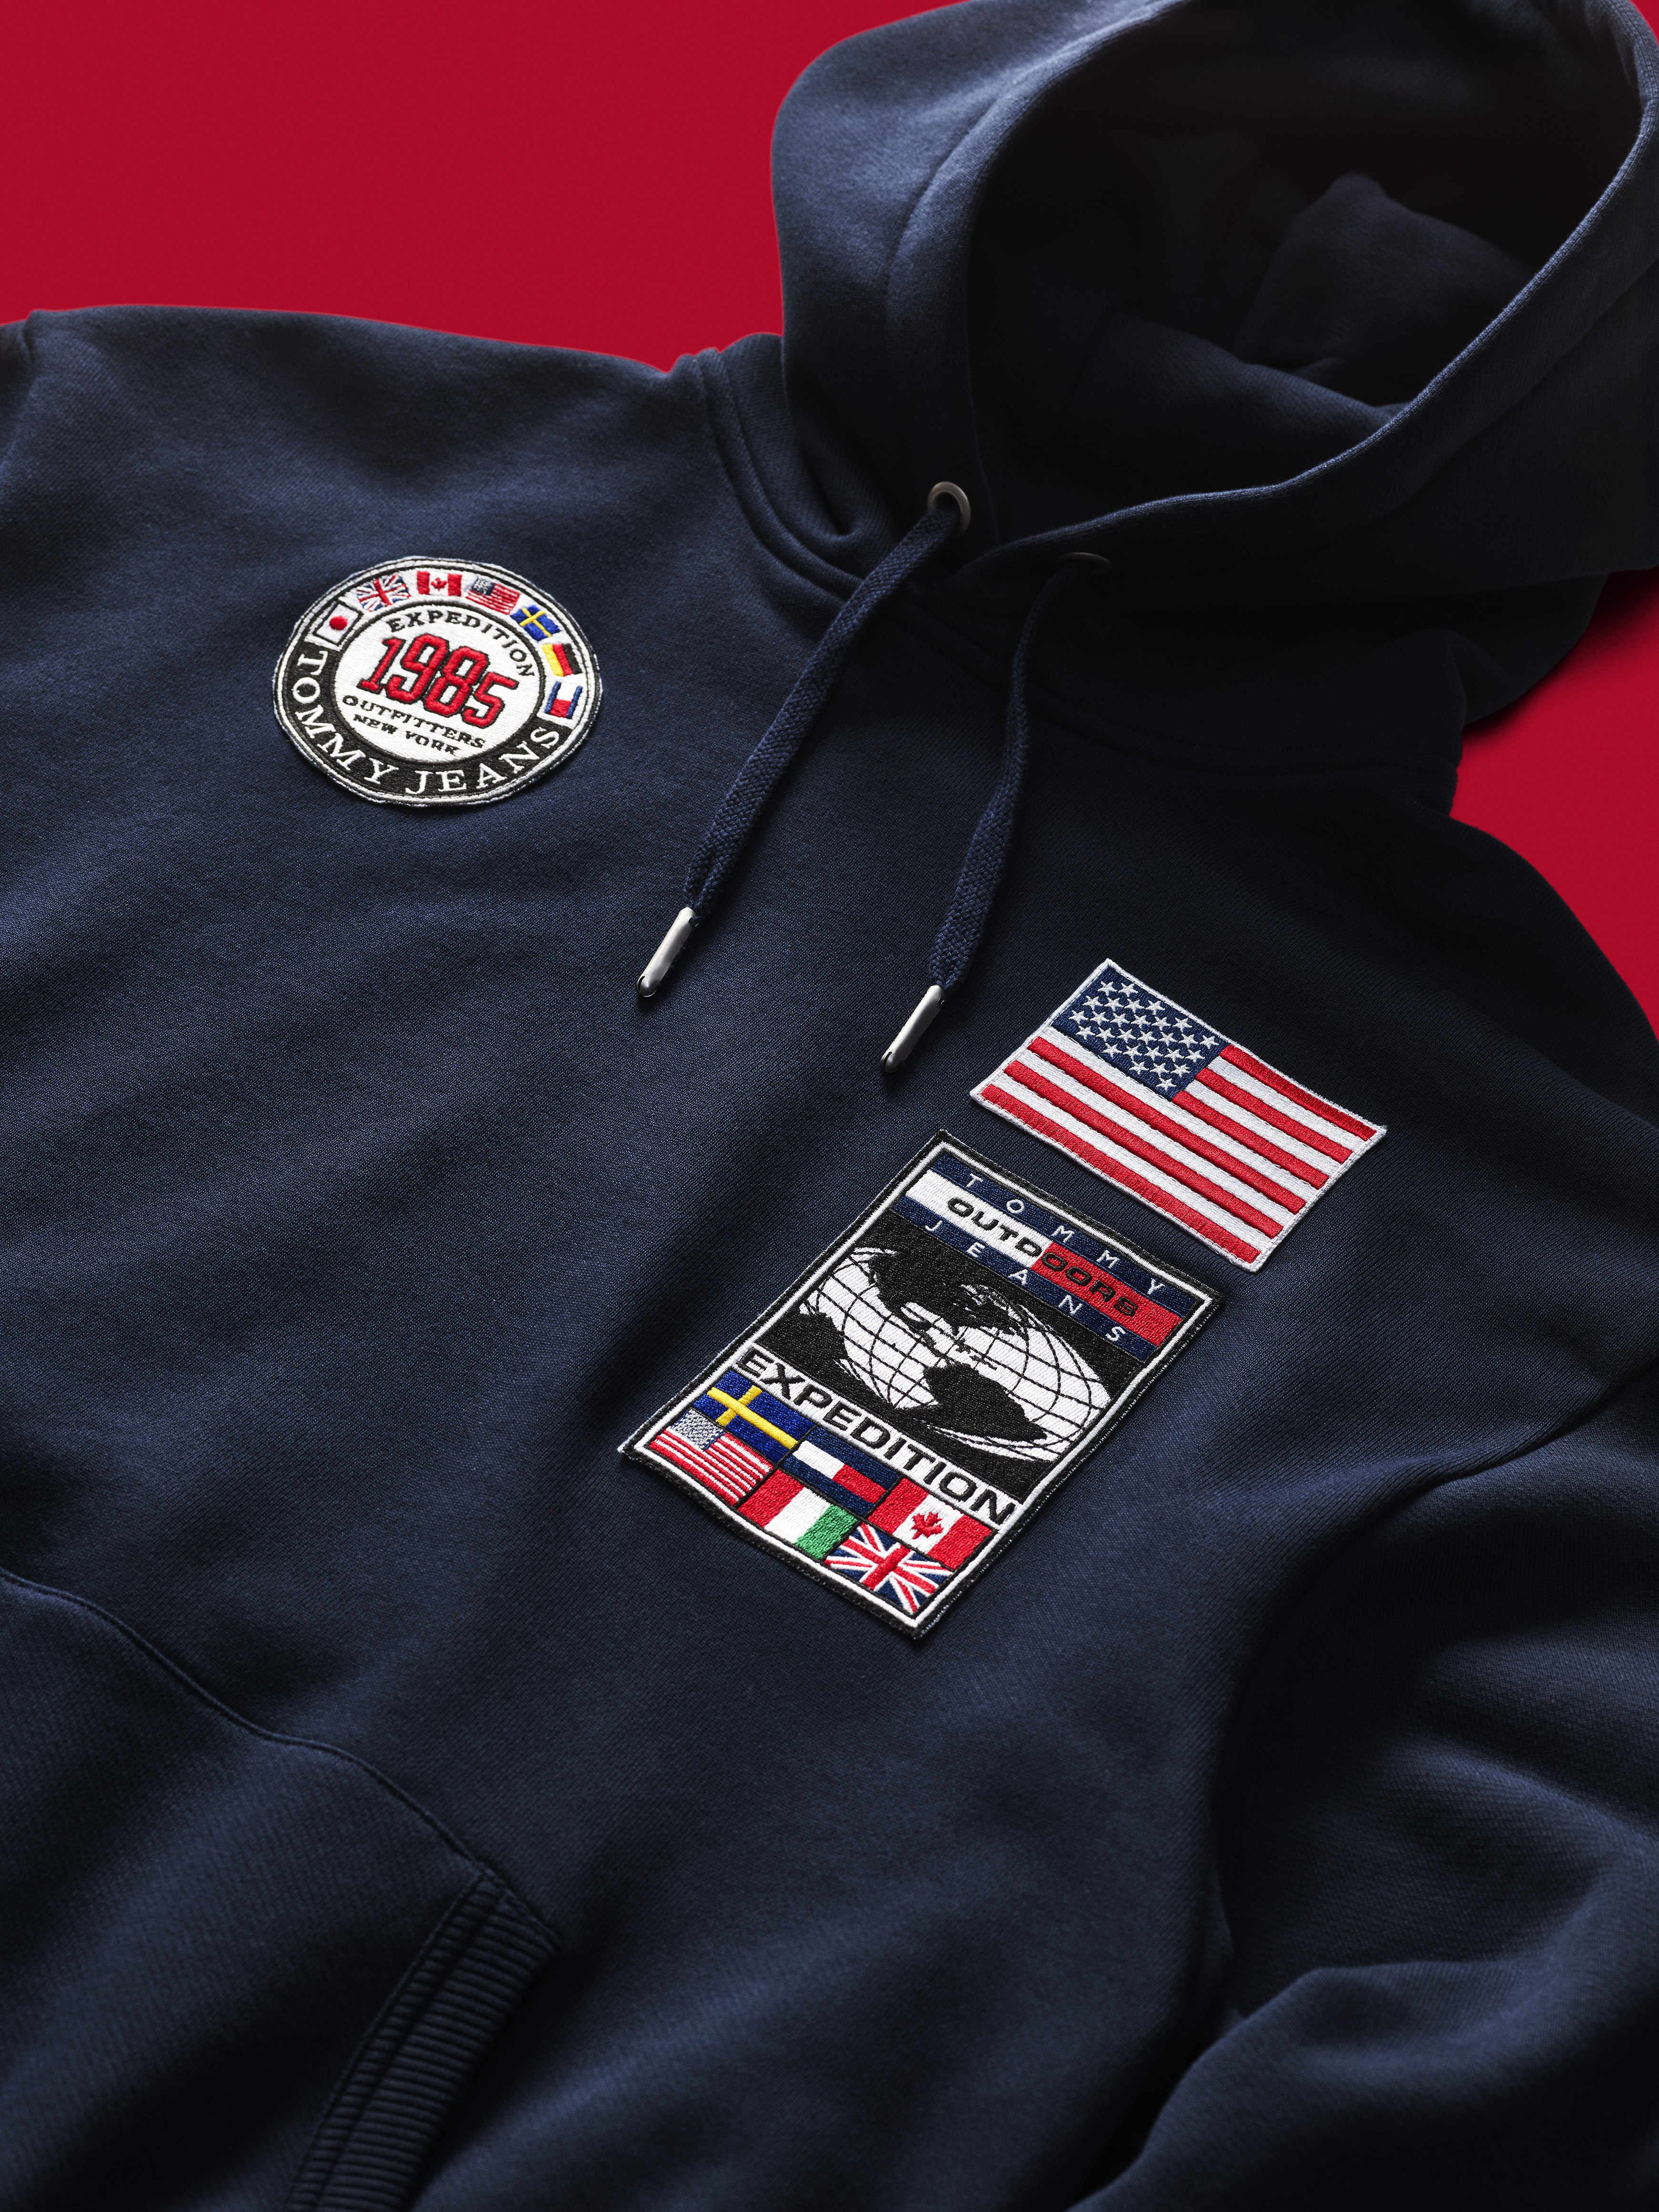 7a87284d6 1540214248001-TJM_EXPEDITION_HOODIE_DETAIL_01_004_red